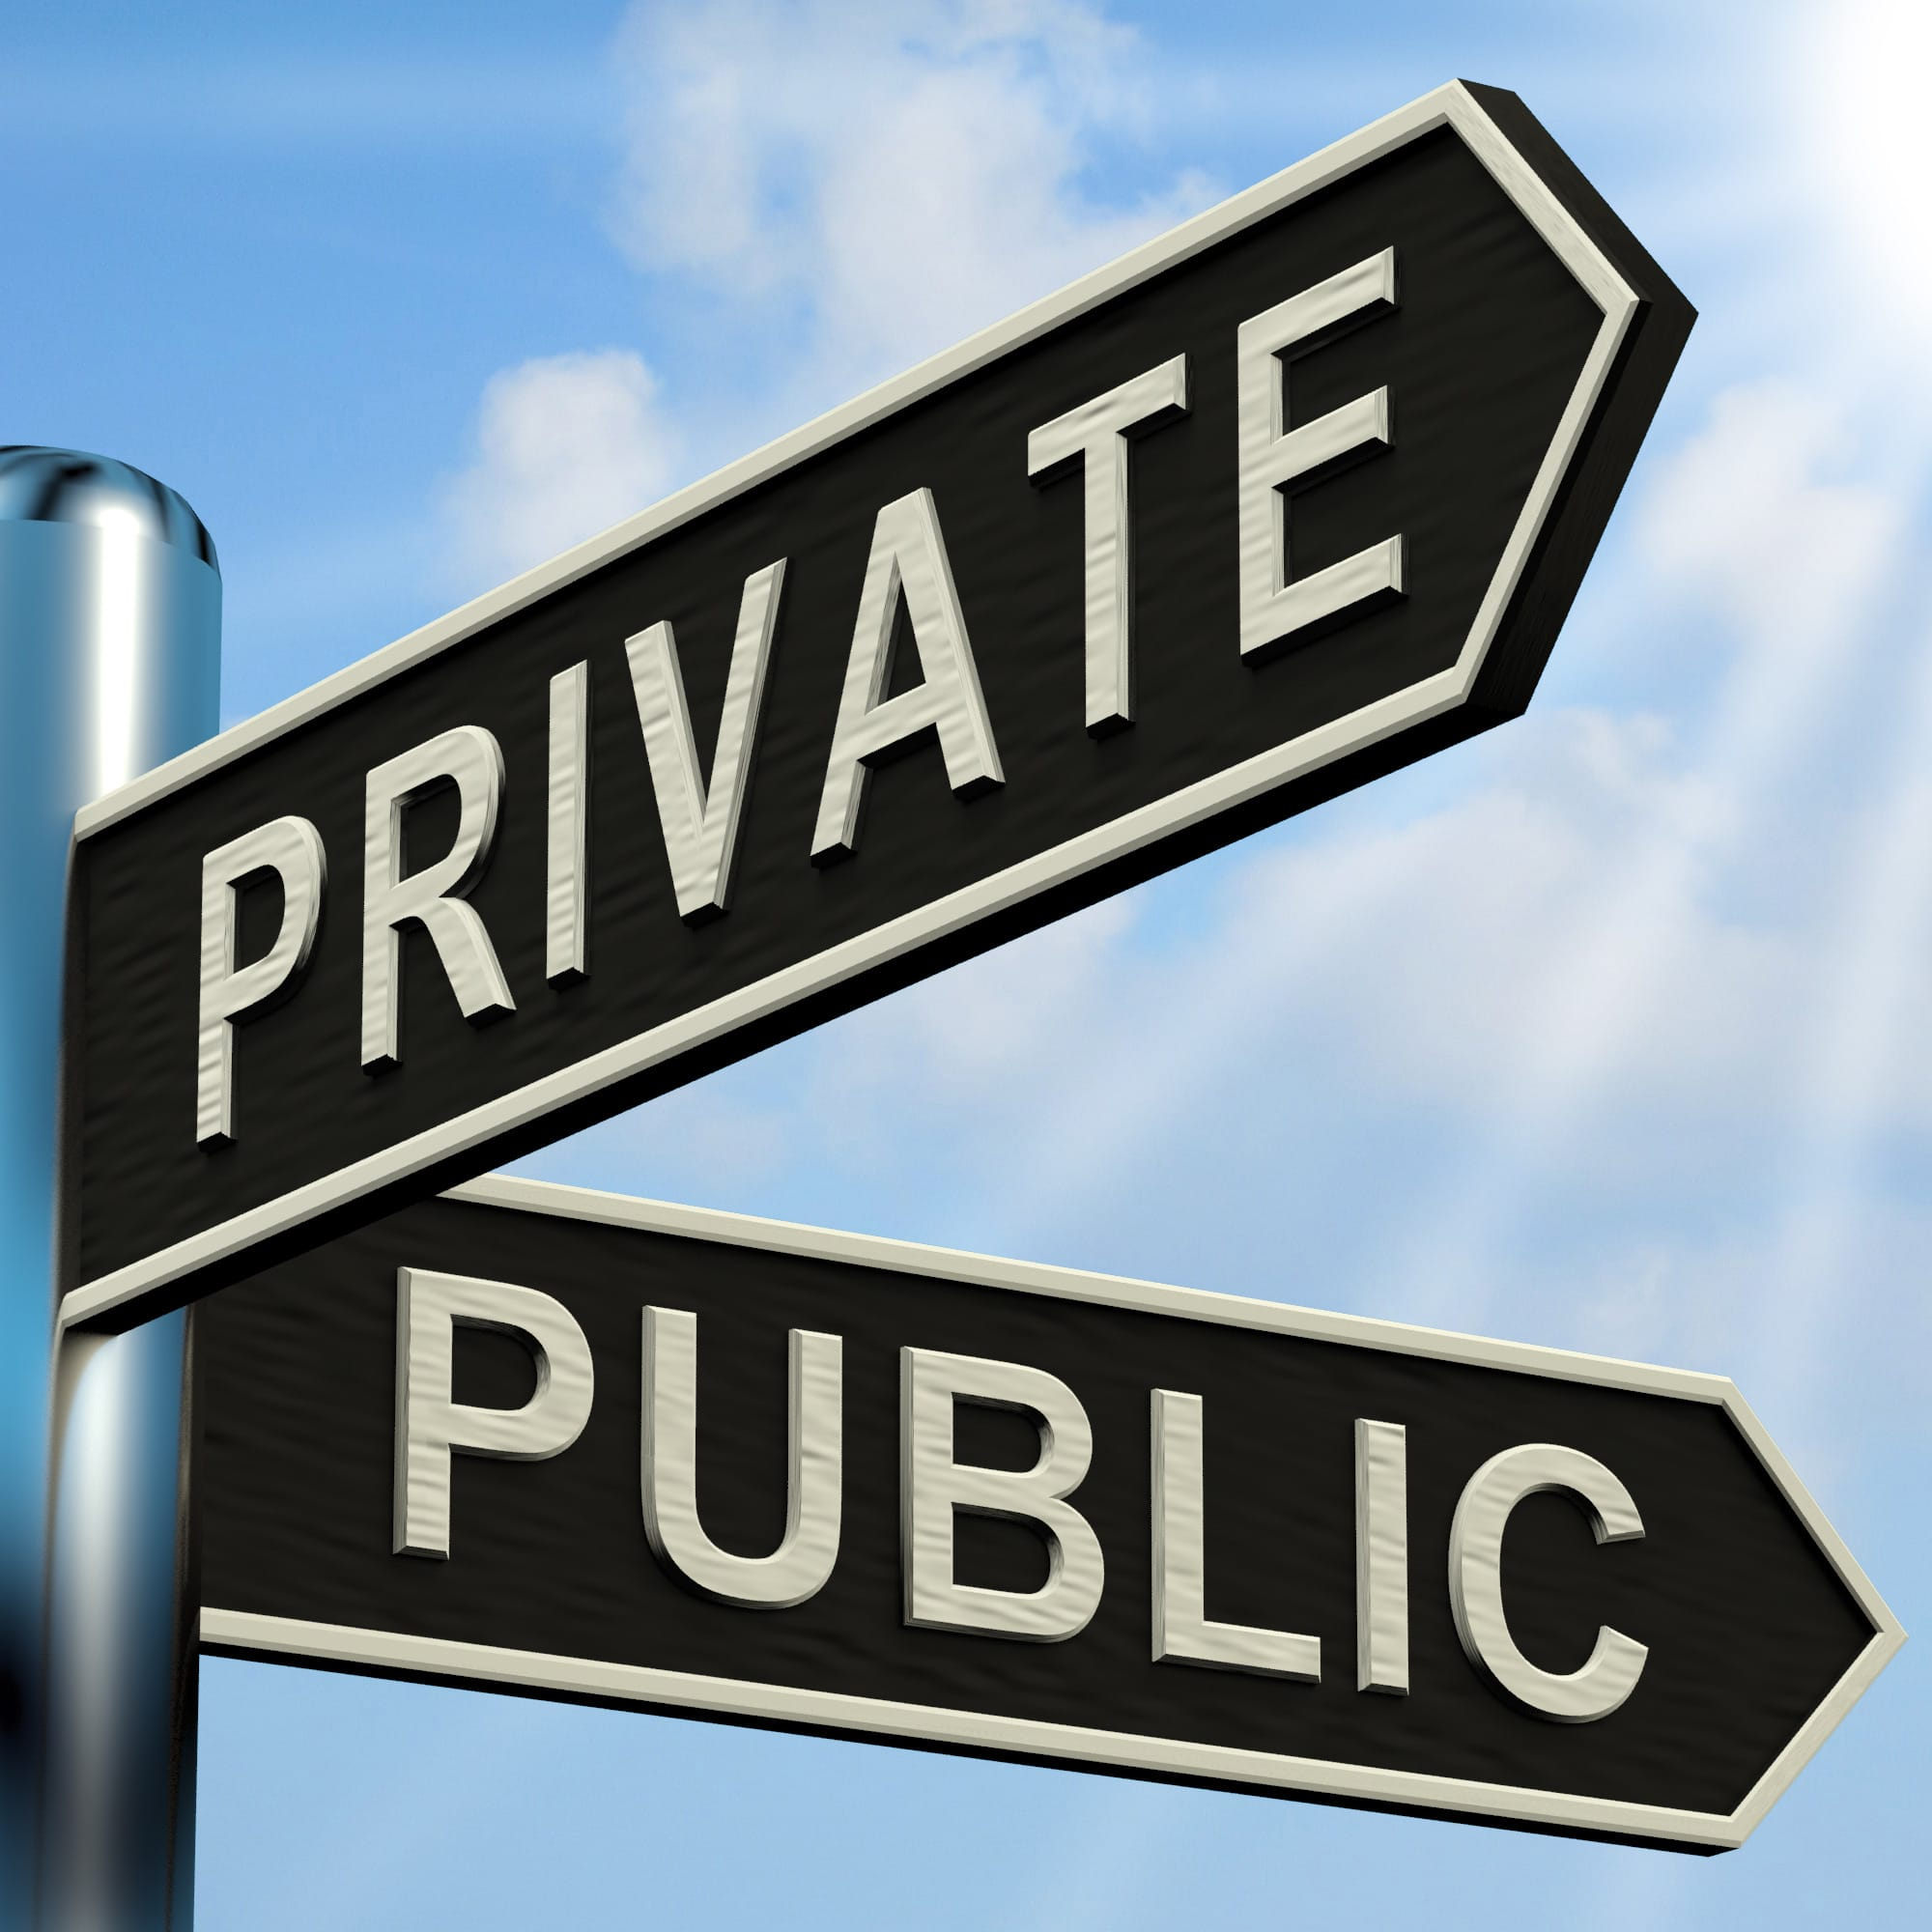 private or public.jpg